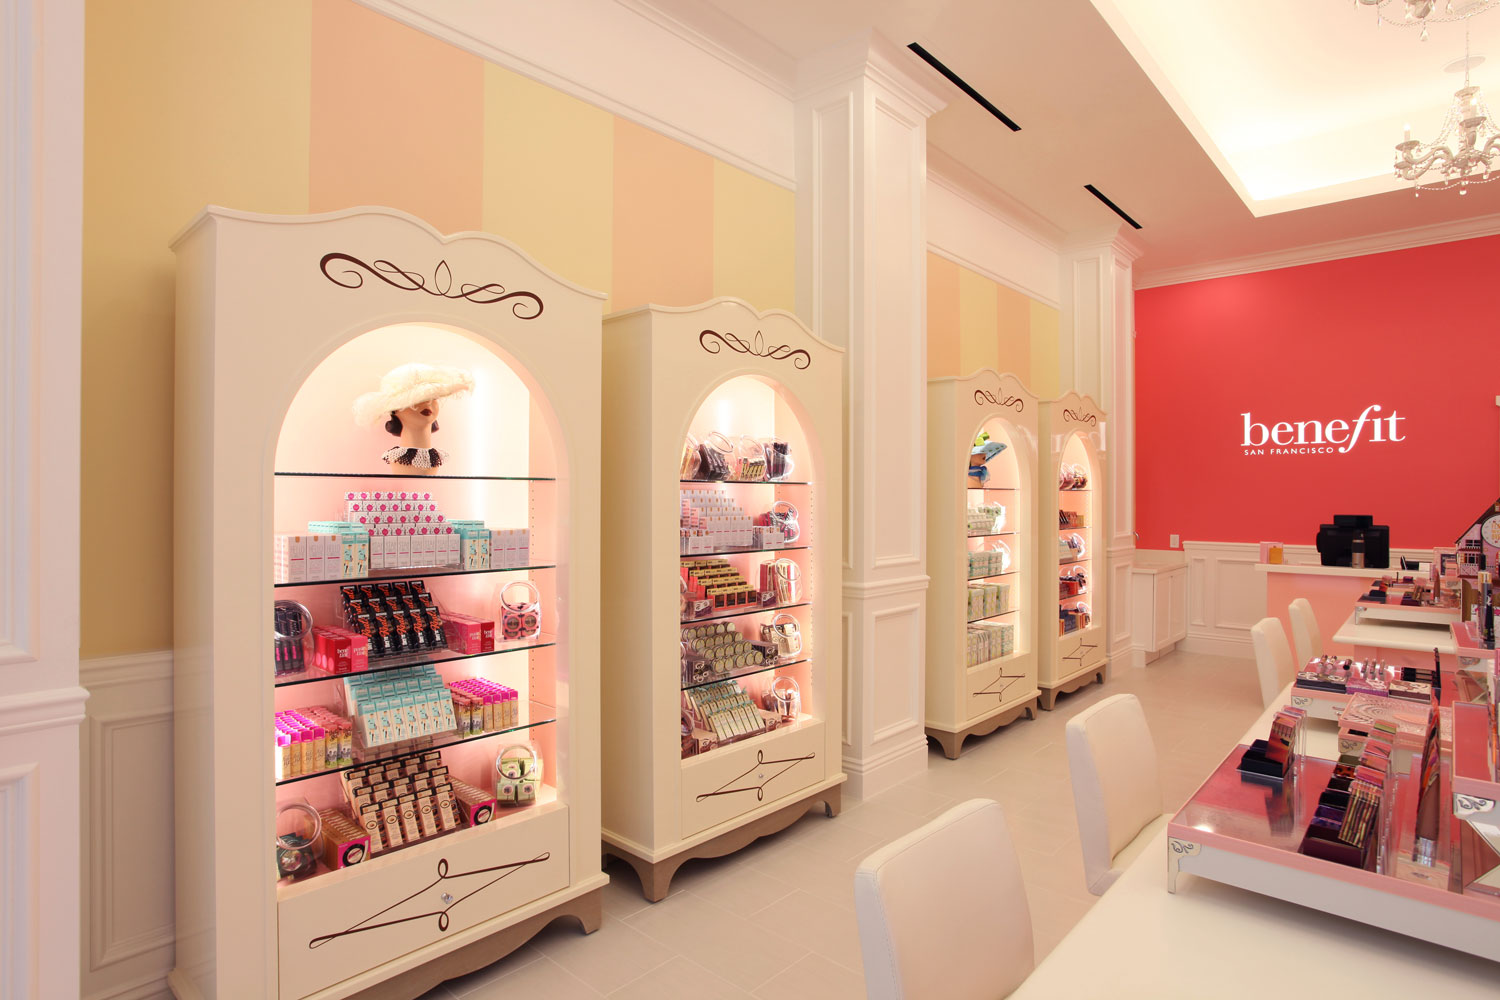 benefit-cosmetics-main-room-3_1000px